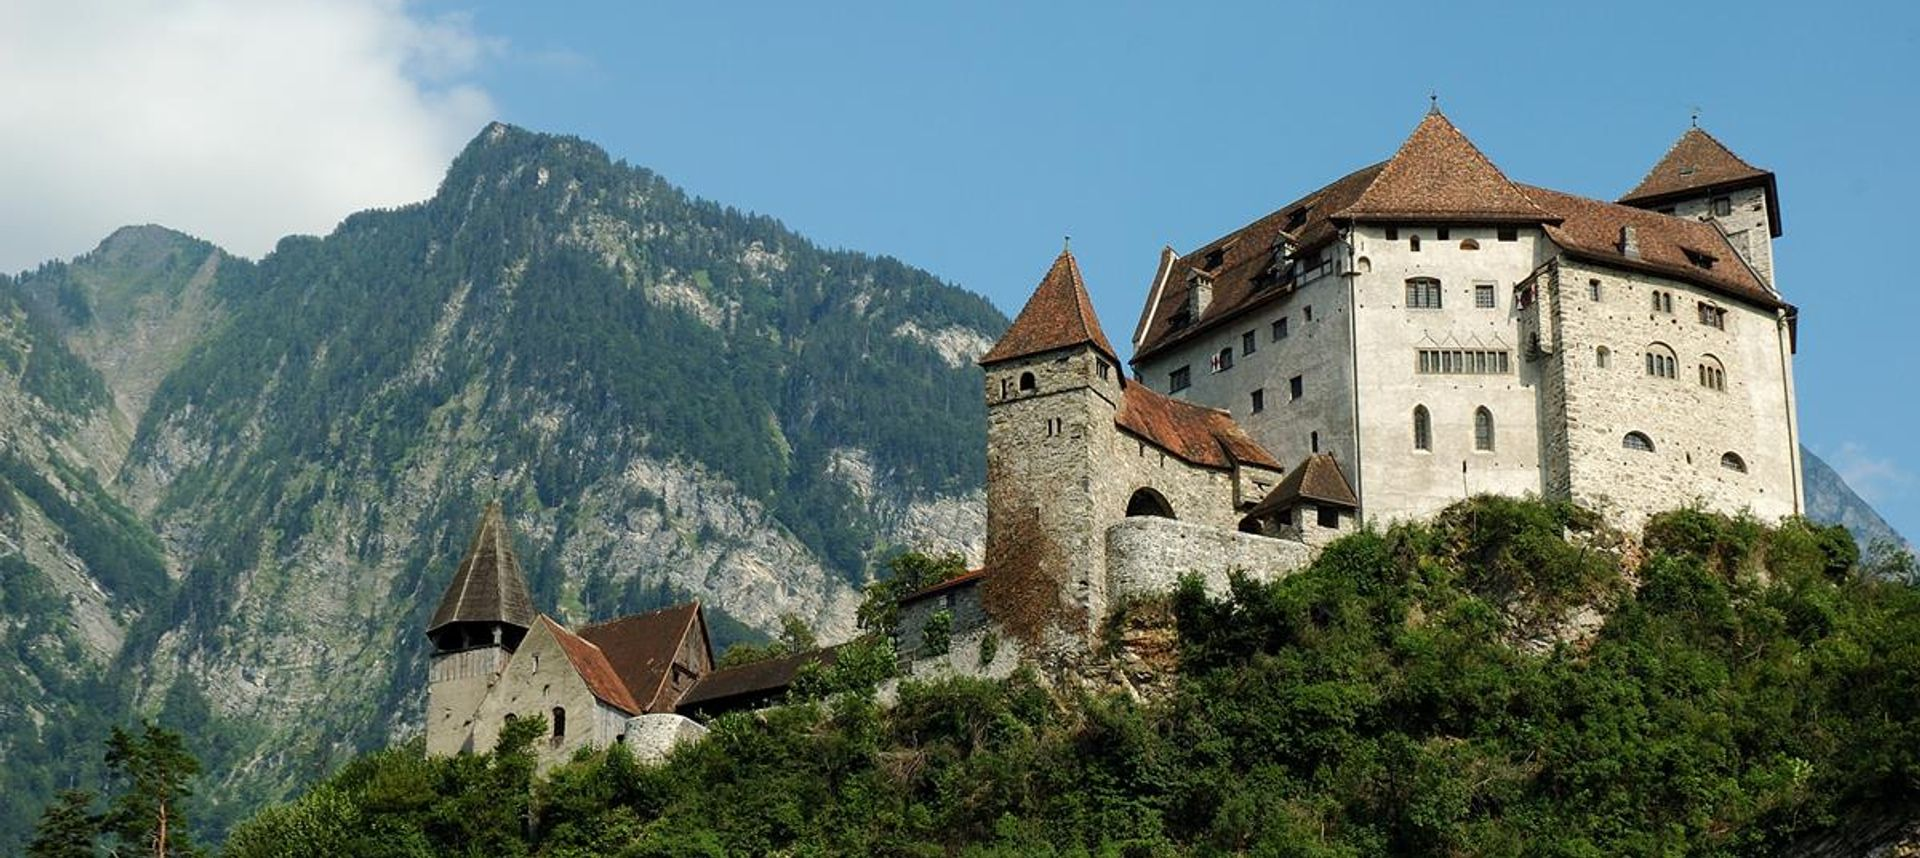 The manificent Gutenberg Castle in Balzers, Liechtenstein(dreamstime.com)